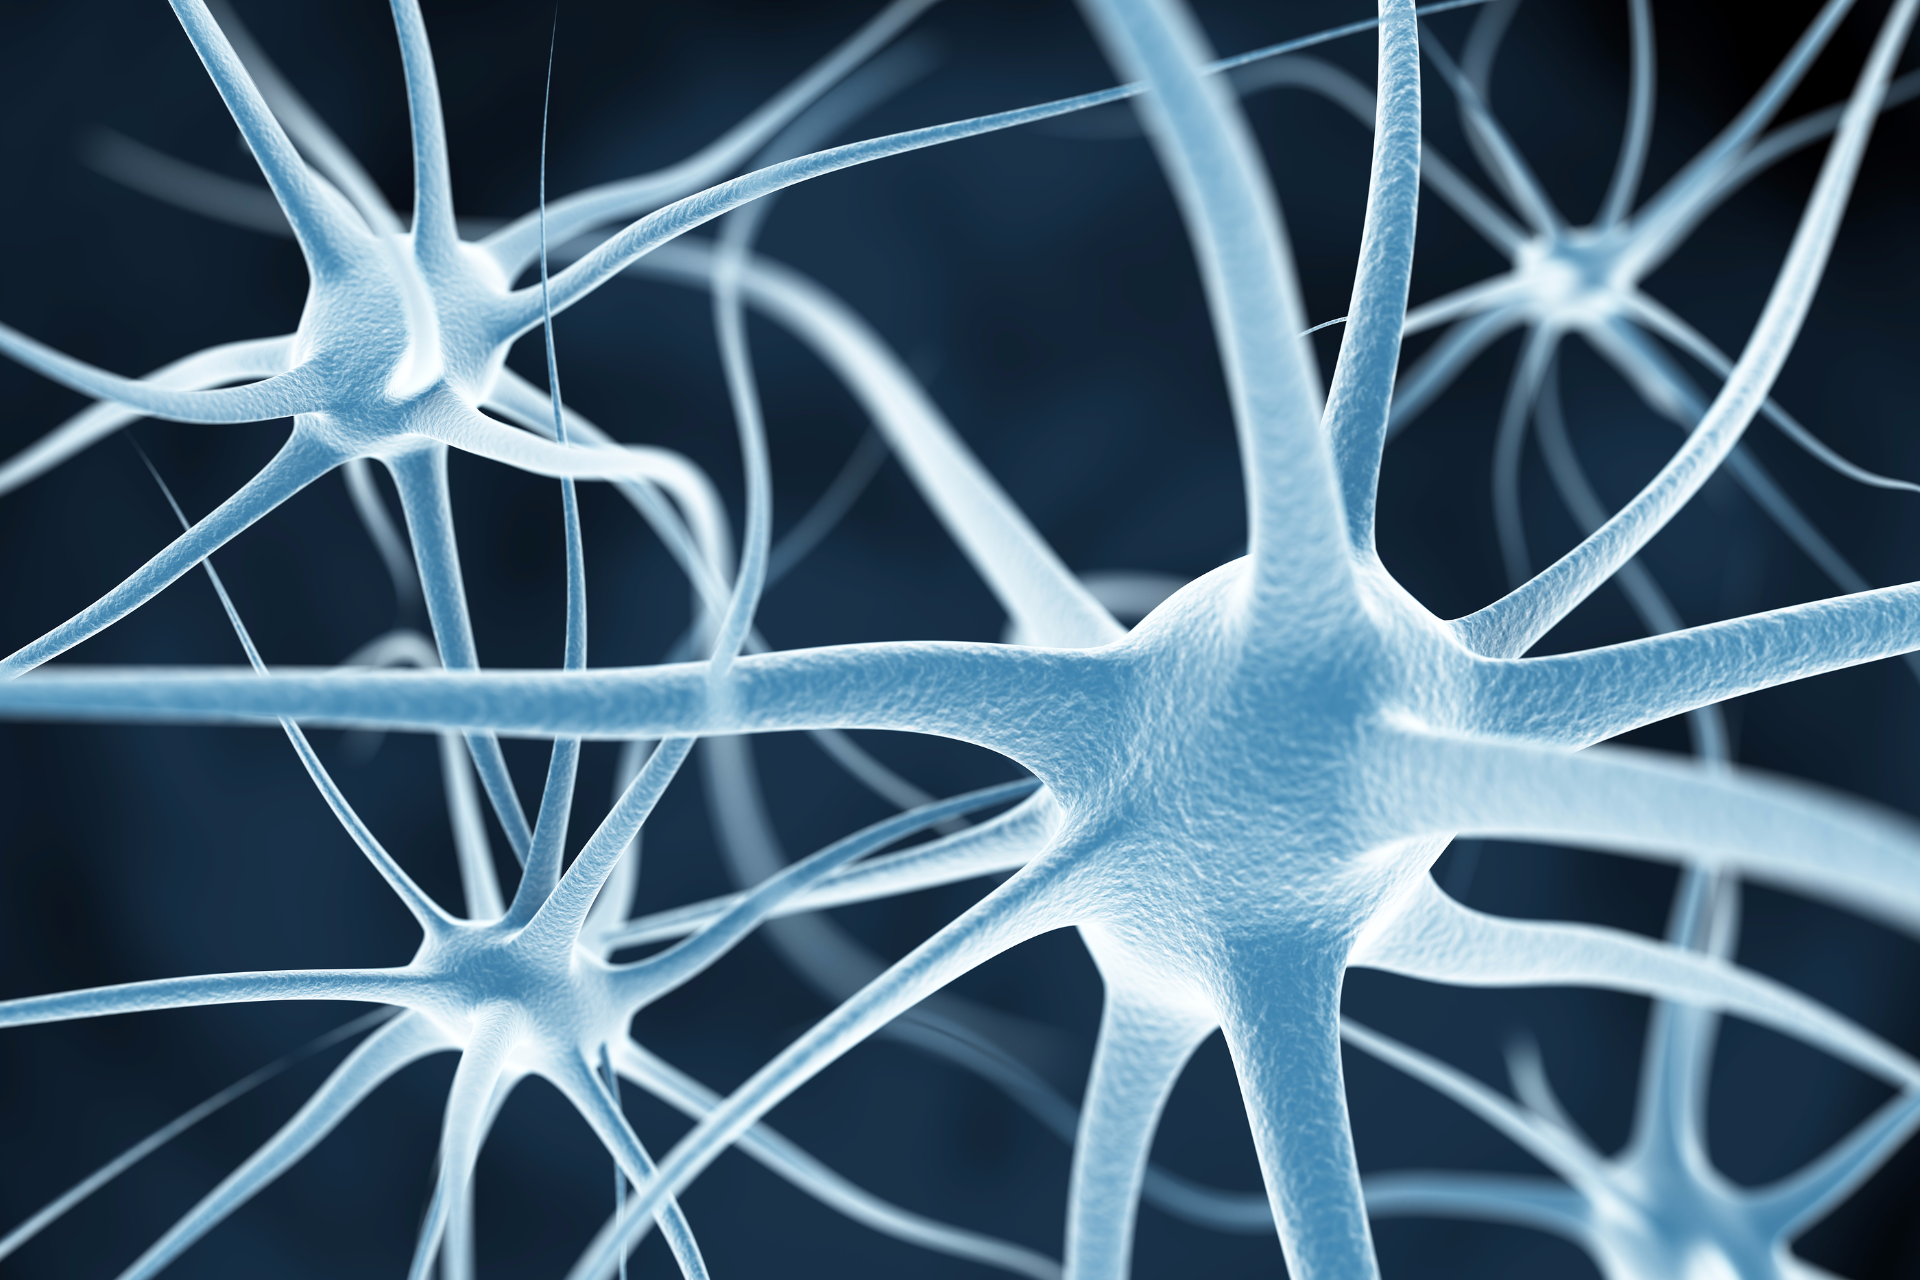 Neurons abstract background_edited.jpg